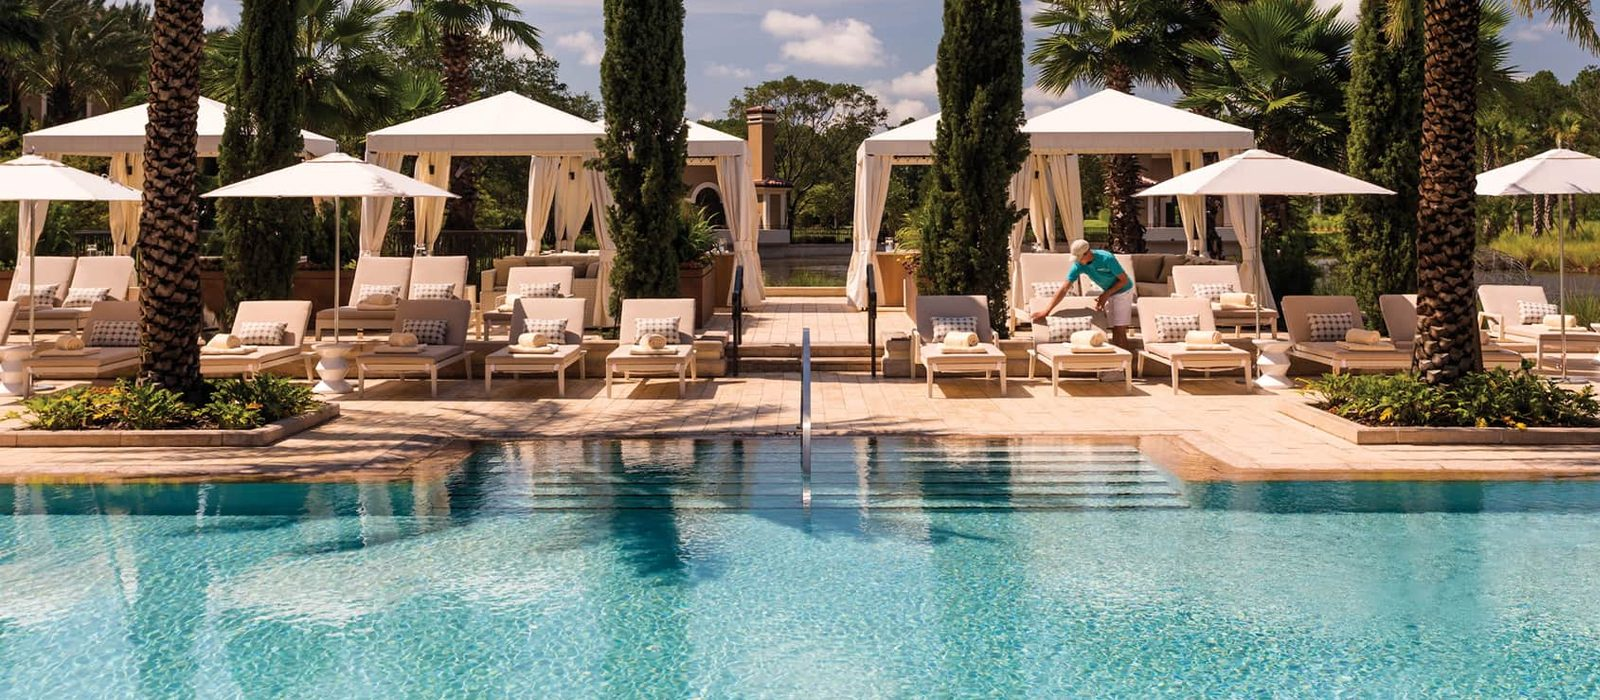 Luxury Orlando Holiday Packages Four Seasons Resort Orlando At Walt Disney World Header